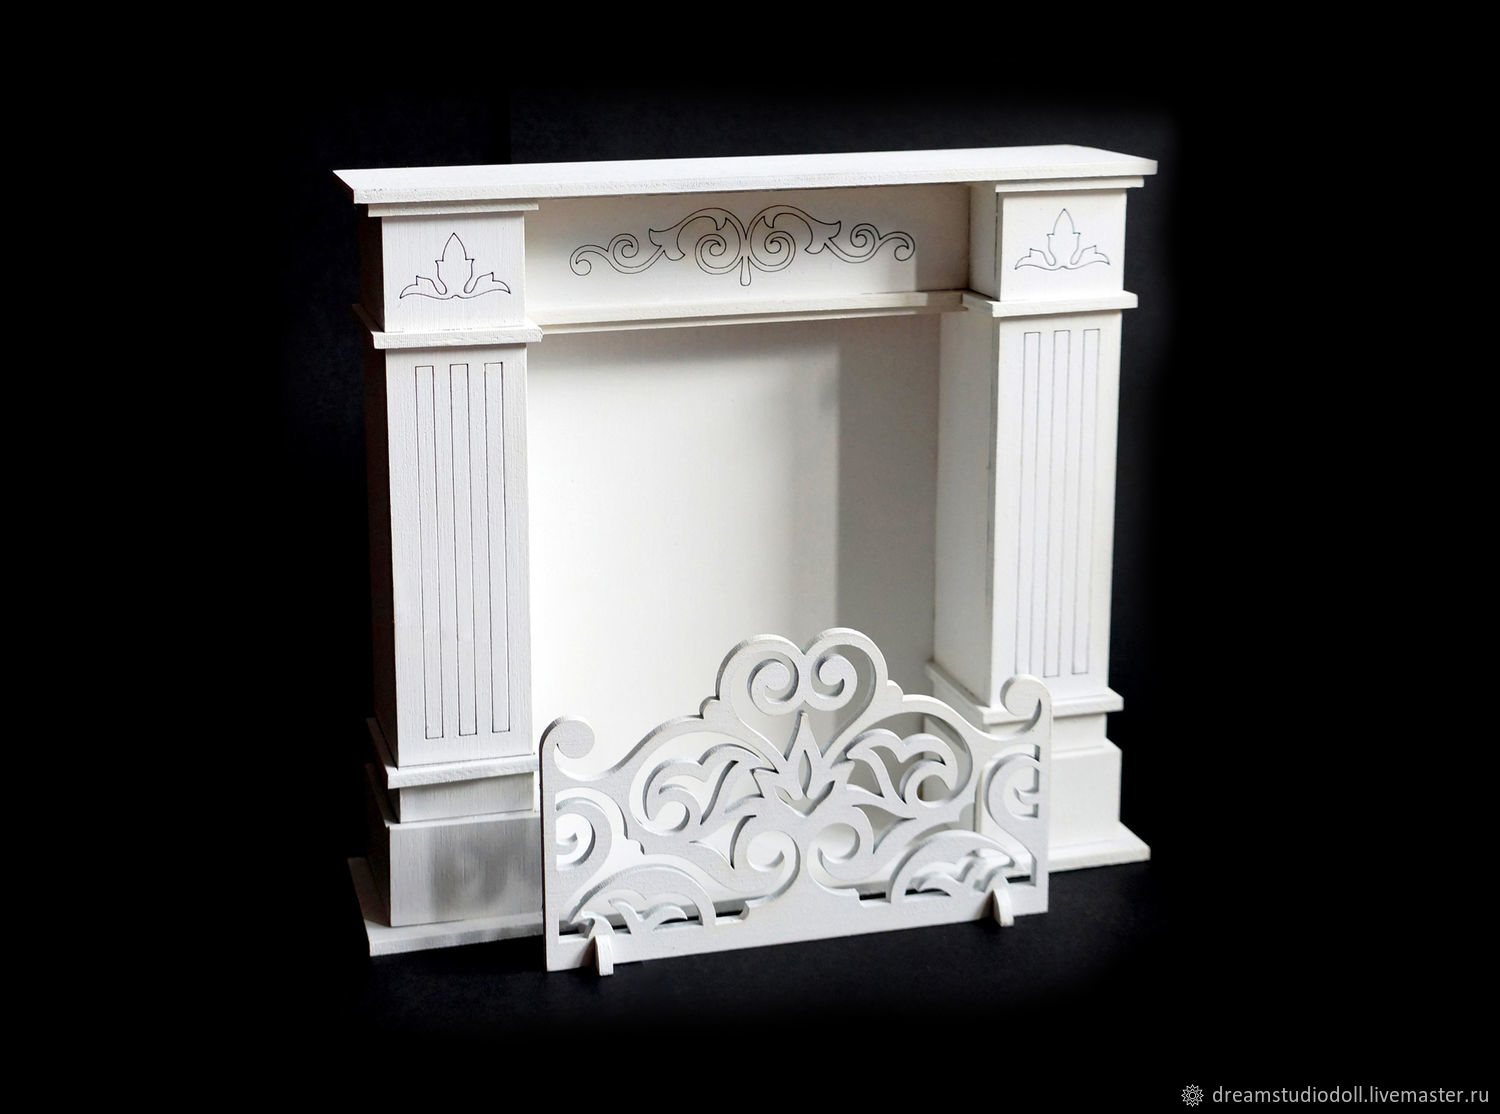 Fireplace for dolls.